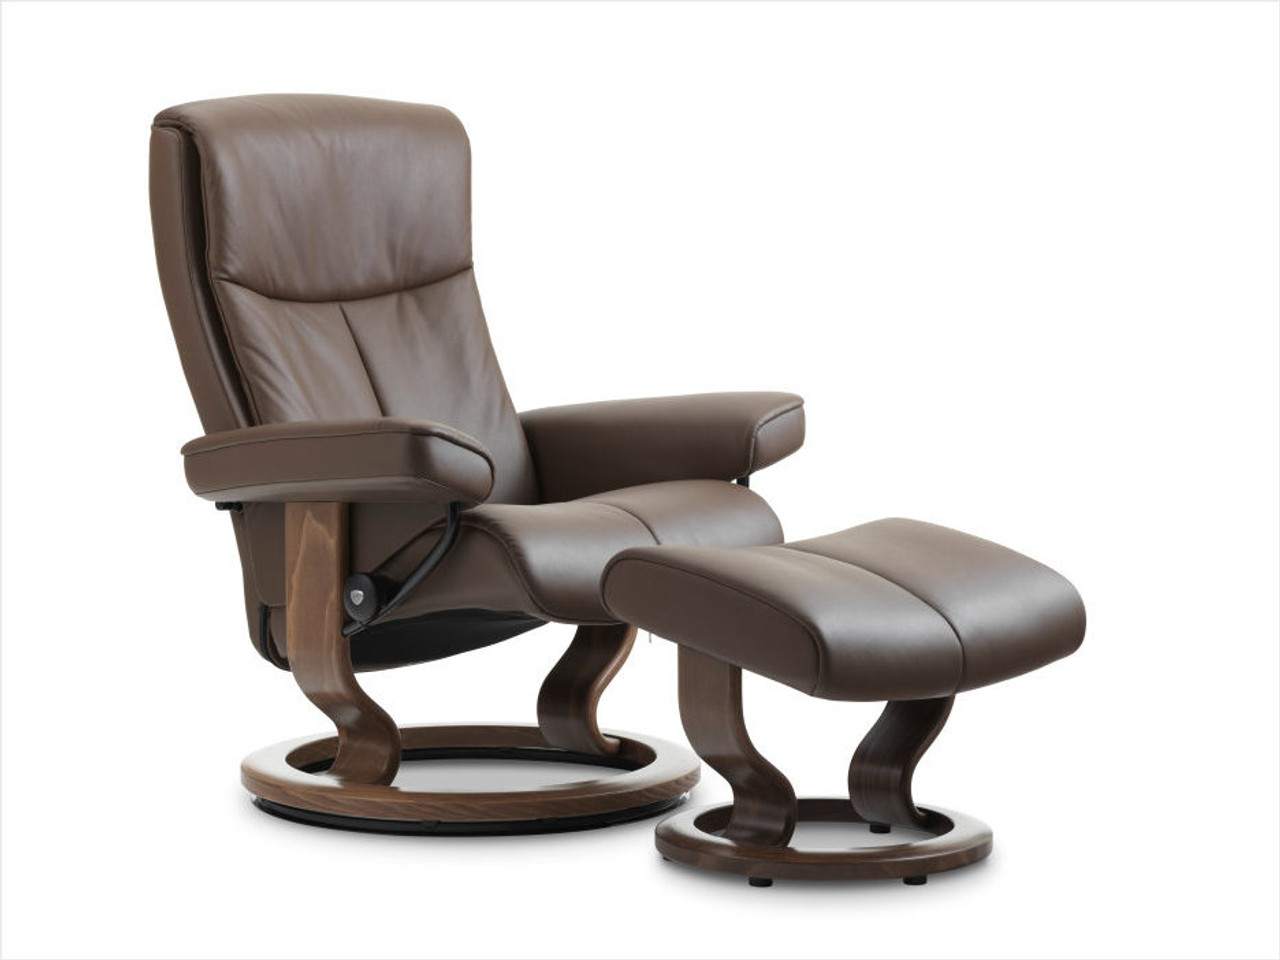 Stressless Video Stressless Peace With Classic Base Medium Recliner And Ottoman